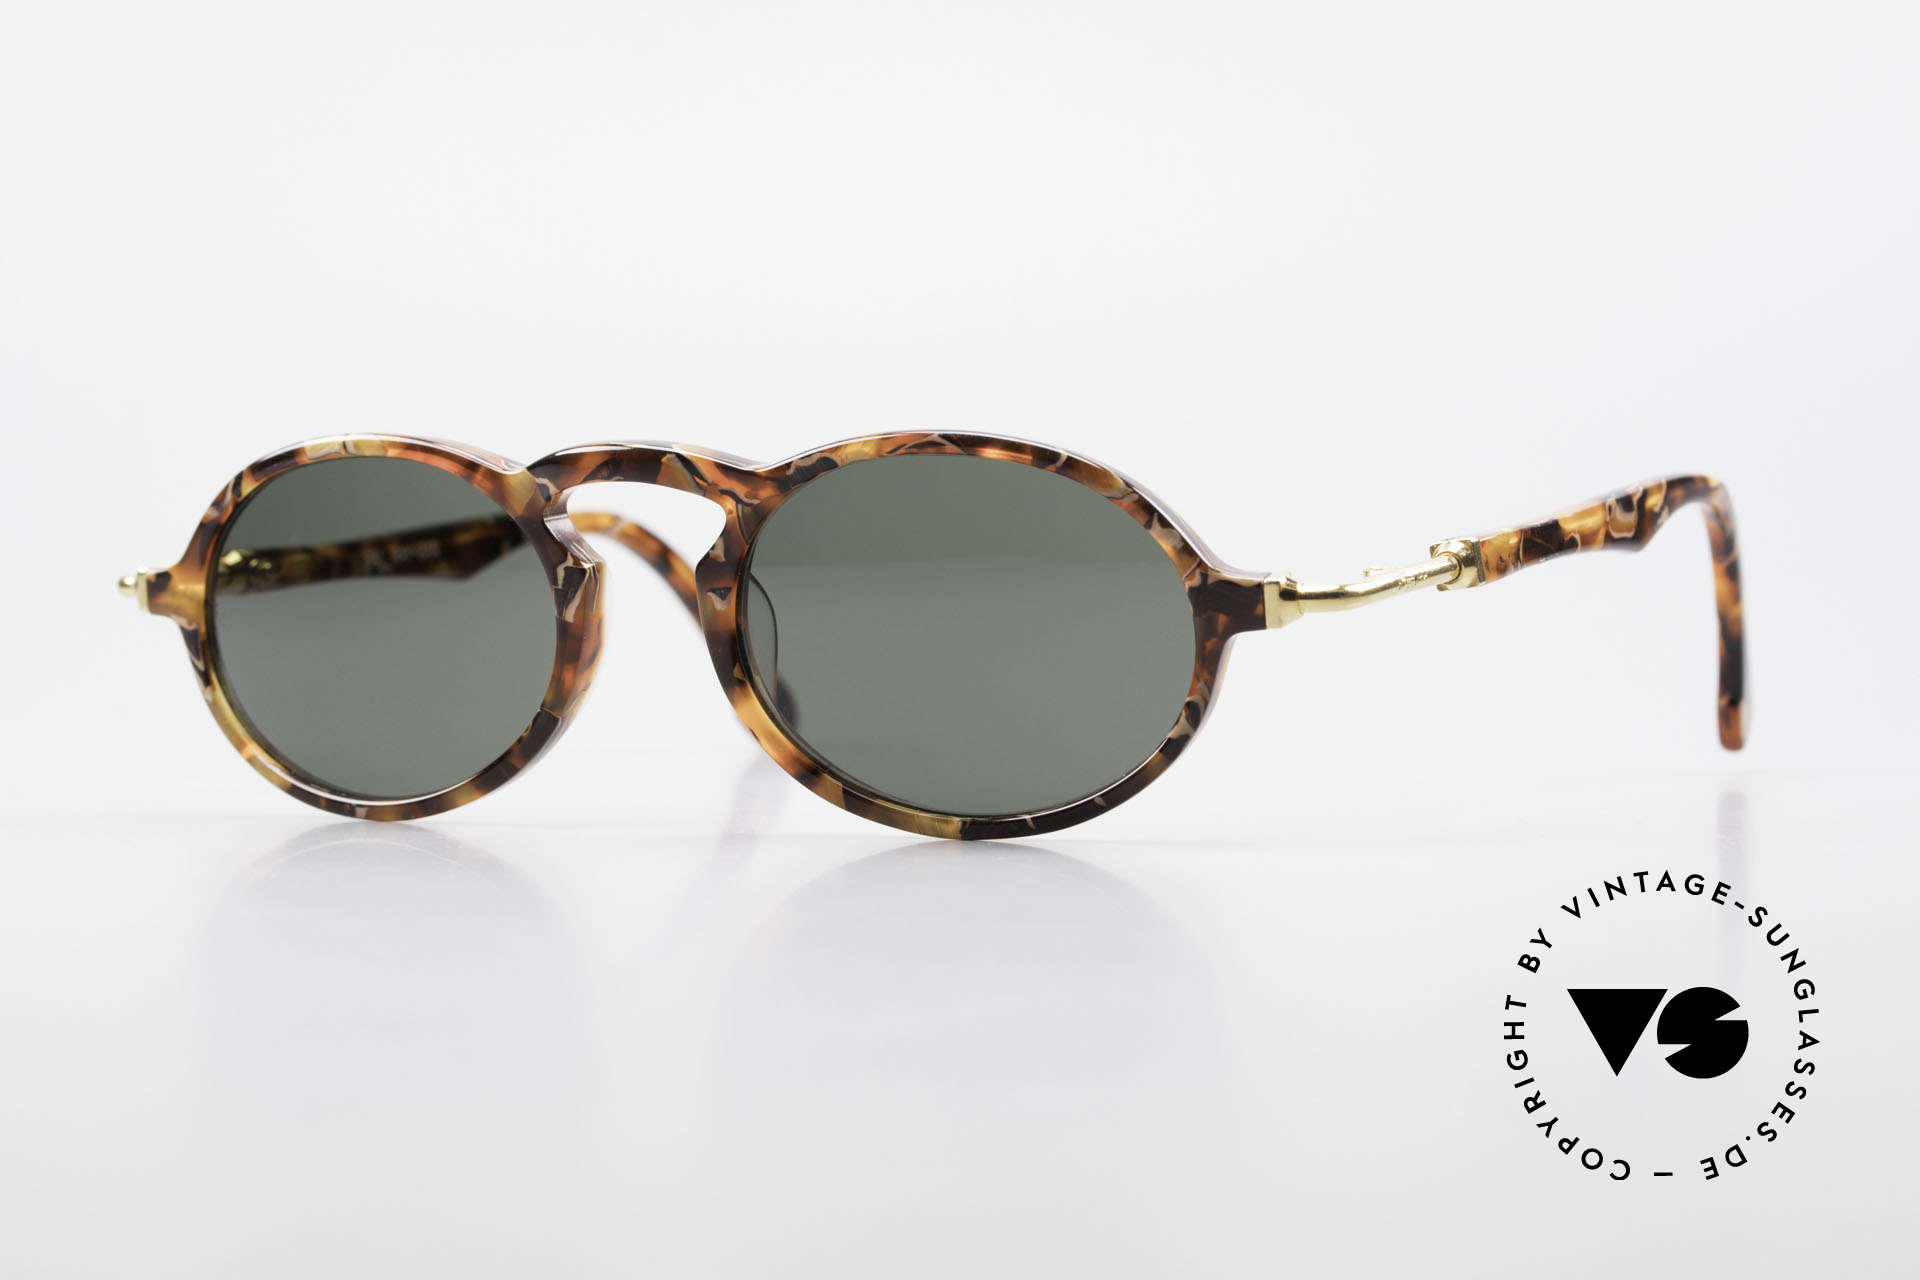 Ray Ban Gatsby 1 DLX B&L USA Original Ray-Ban 90's, W1524 RAY-BAN Gatsby Deluxe Style 1 Shades USA, Made for Men and Women